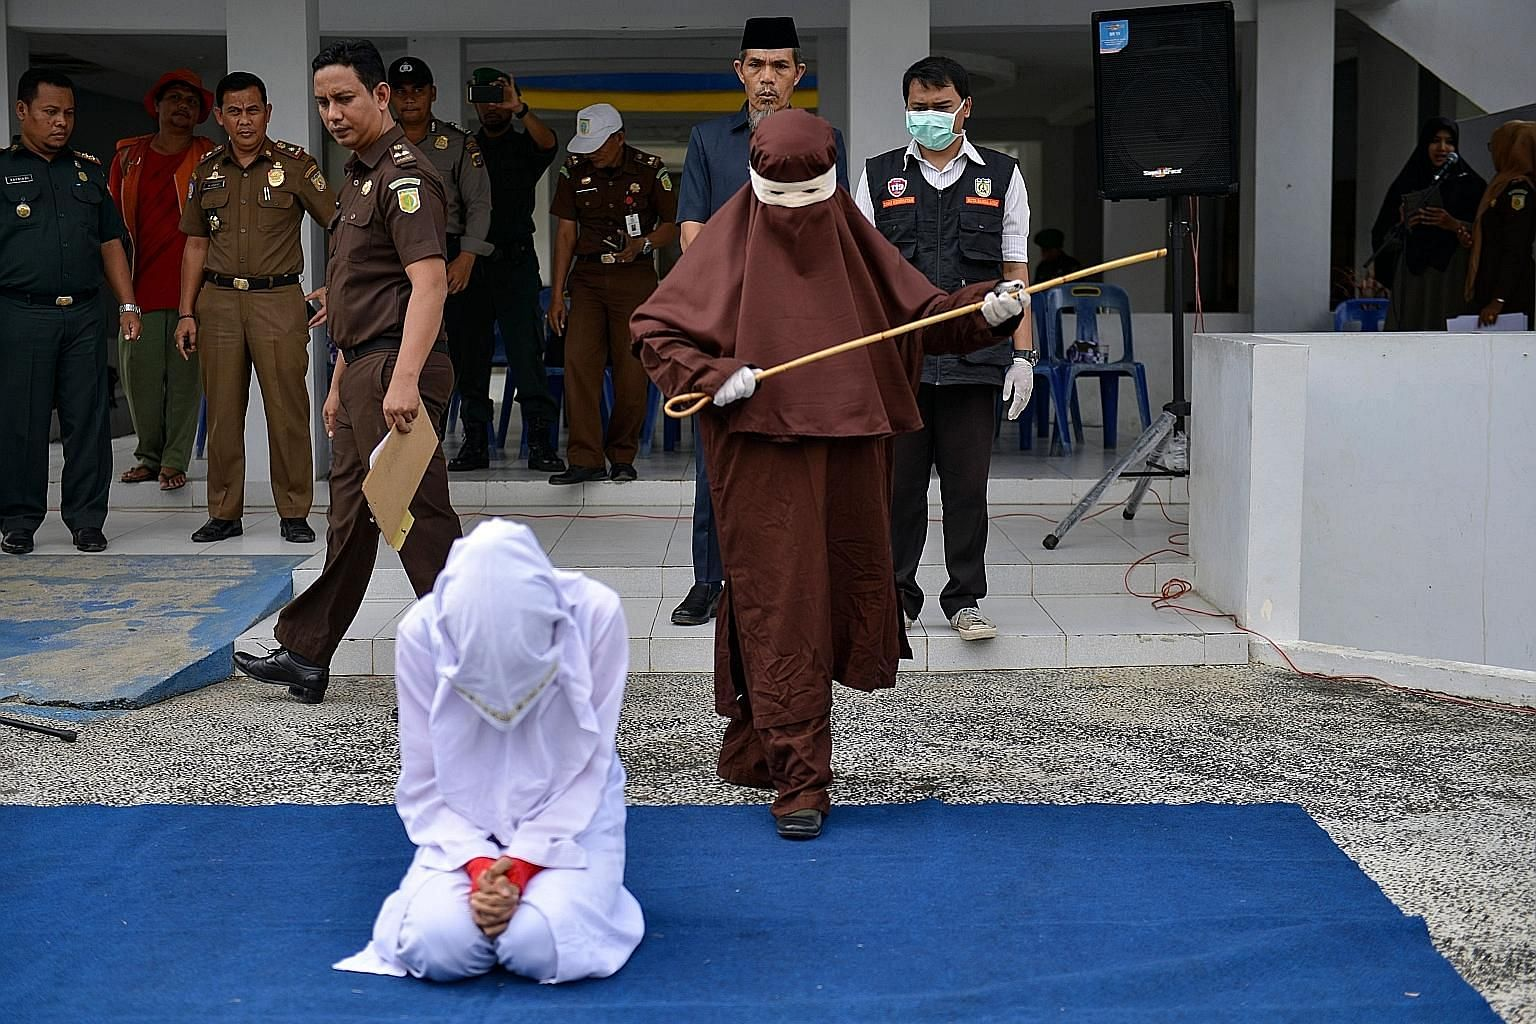 A member of the first female flogging squad in Indonesia's Aceh province preparing to whip a woman last month. Public whipping is a common punishment in the province for premarital sex, adultery, drinking alcohol, gambling and other behaviour that co